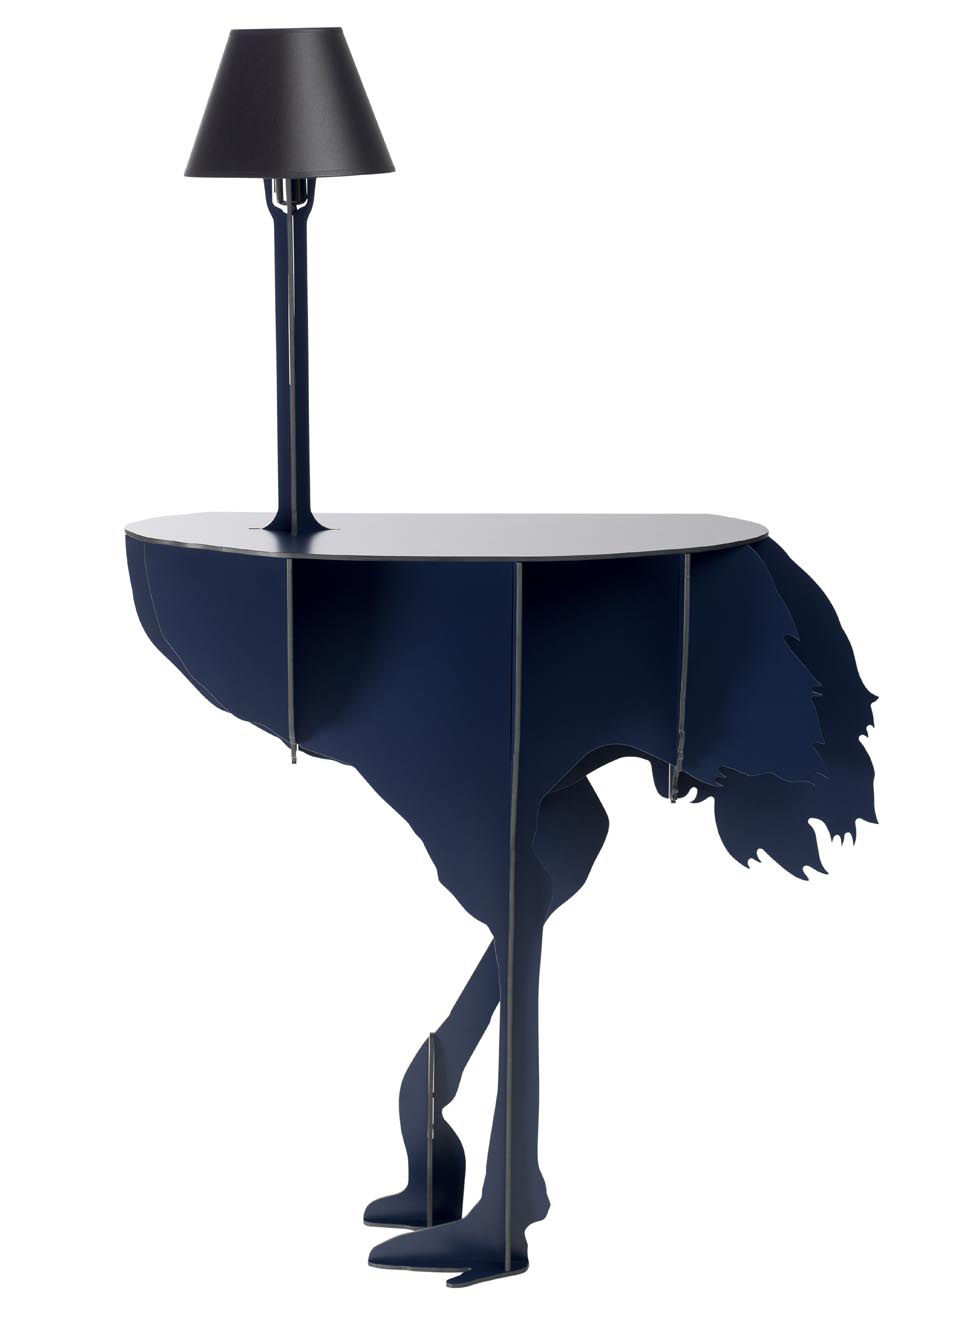 Furniture - Kids Furniture - Diva Lucia Console - / Integrated lamp by Ibride - Midnight blue / Blue & grey lampshade - Compact stratified layers, Nylon